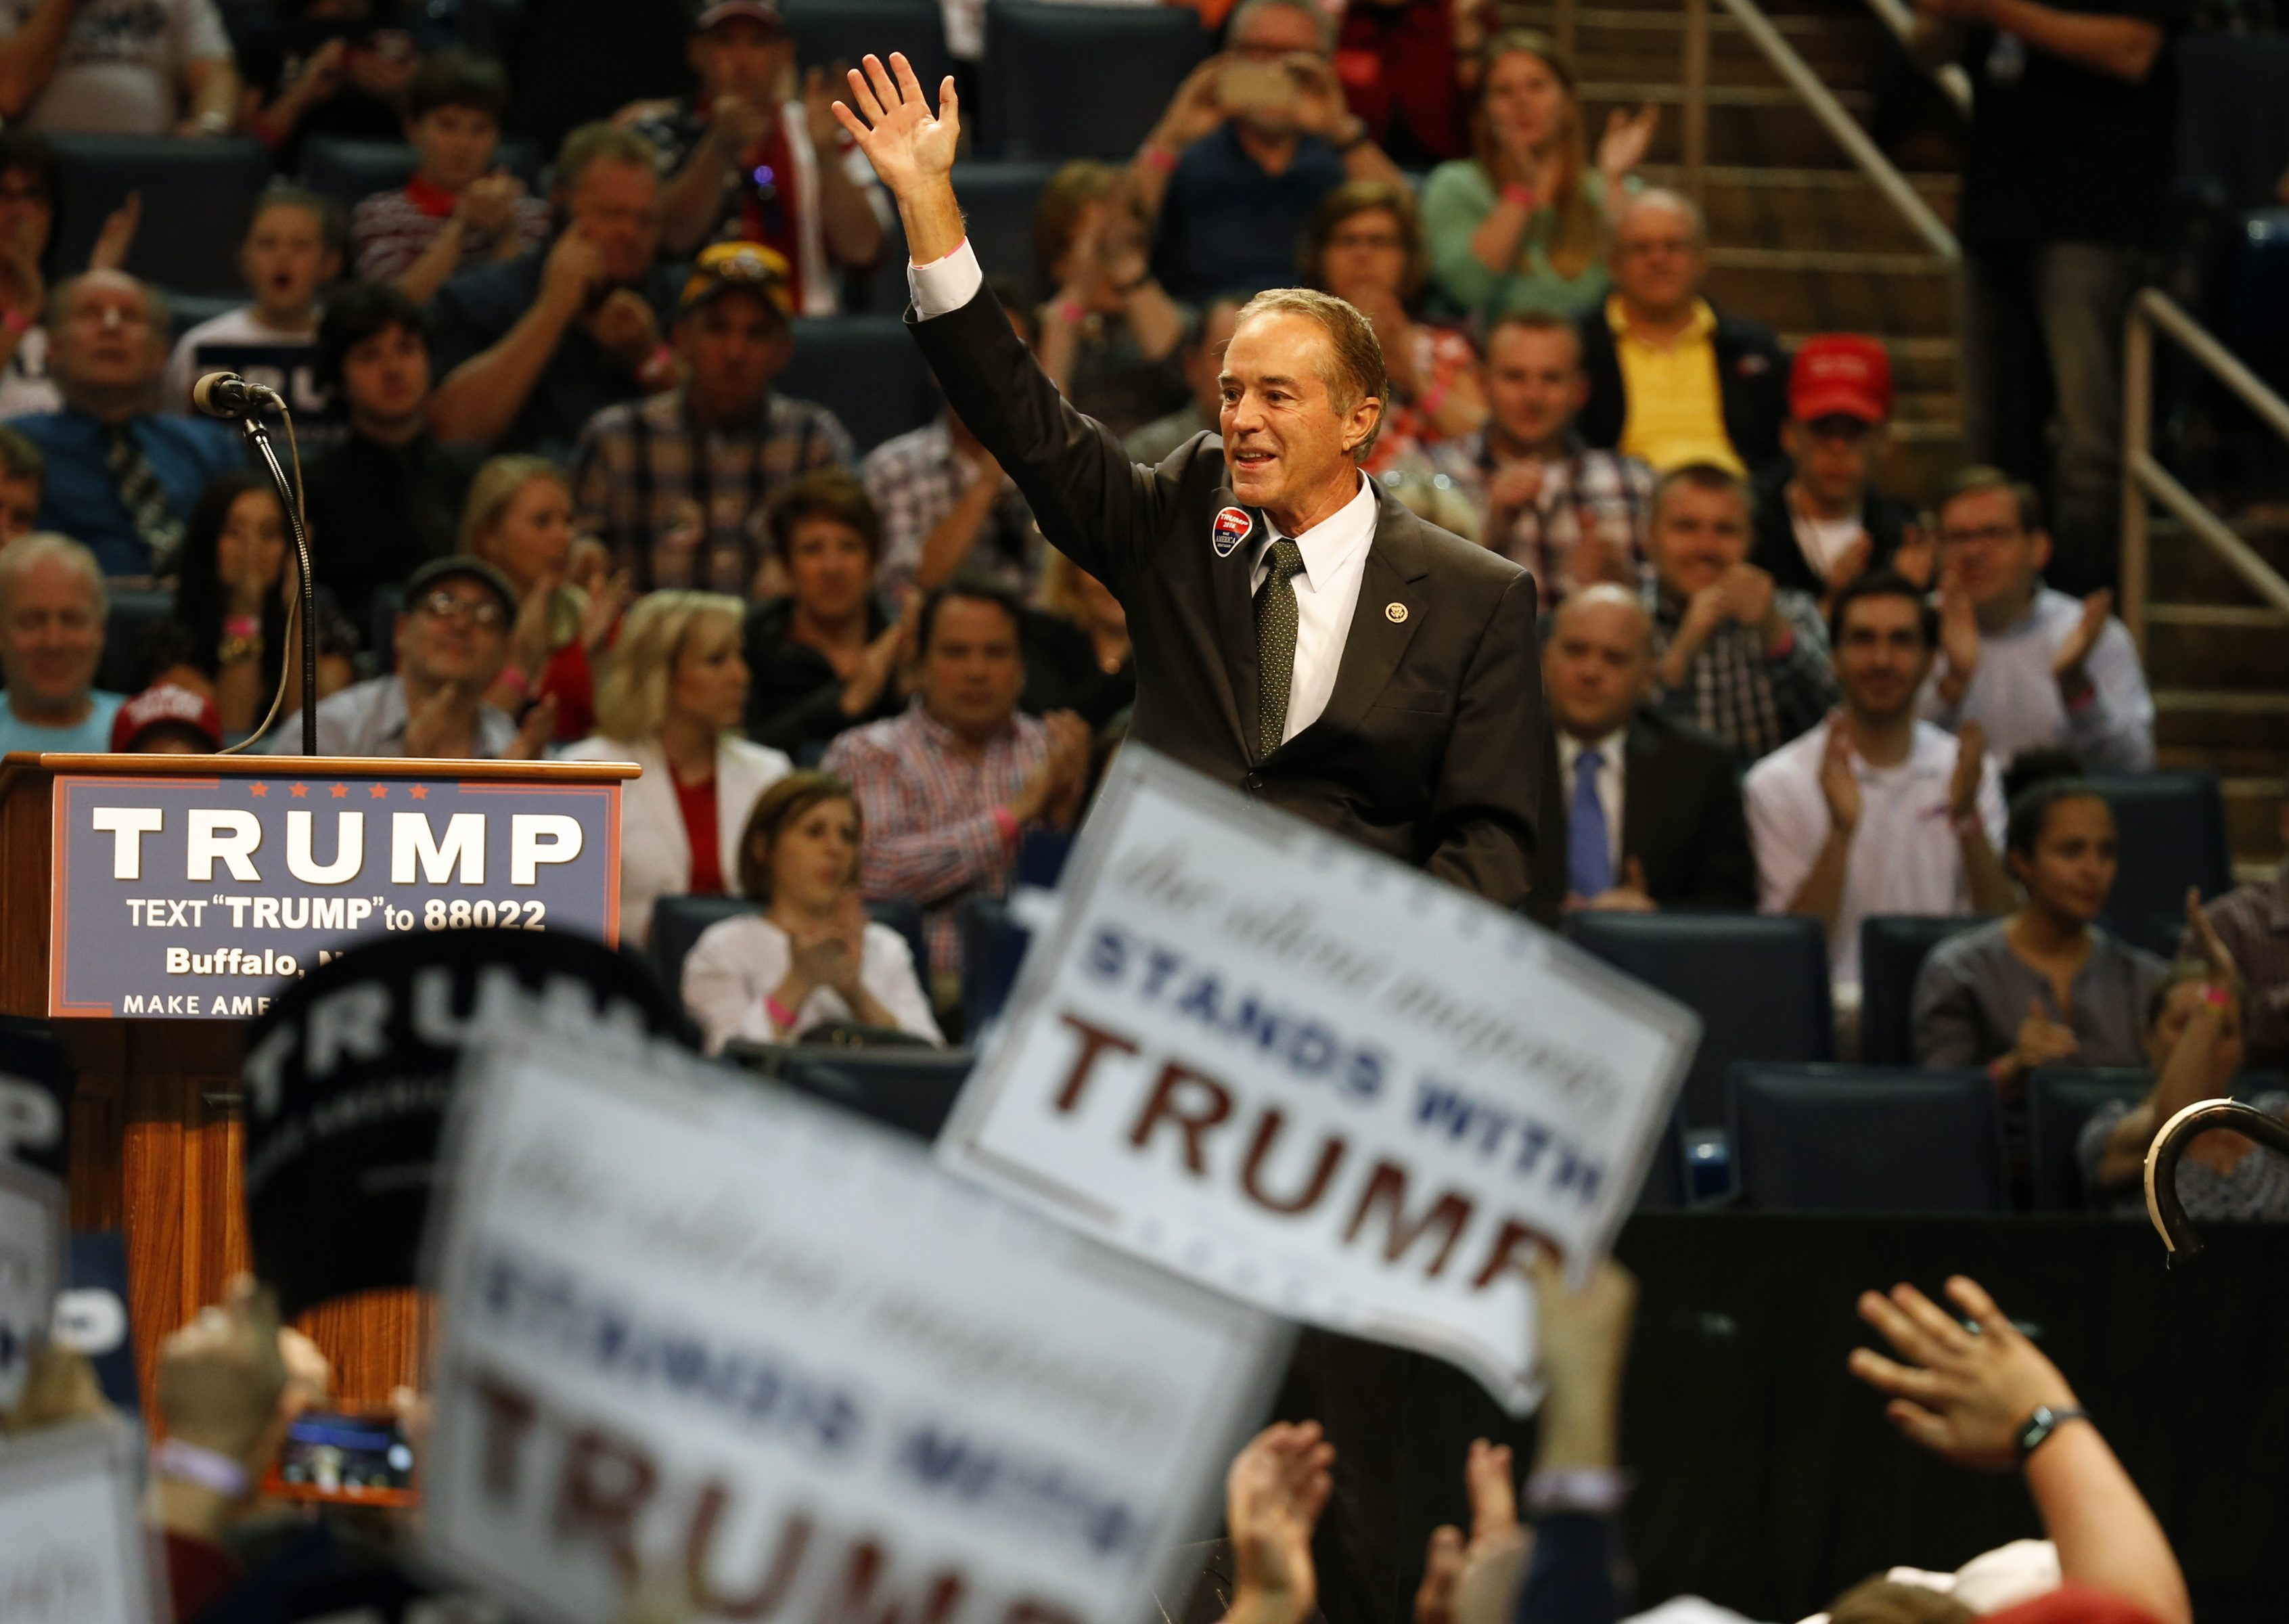 Congressman Chris Collins waives and speaks to the crowd gathered for now President-elect Donald Trump at the First Niagara Center during a rally in April. (Harry Scull Jr./Buffalo News)